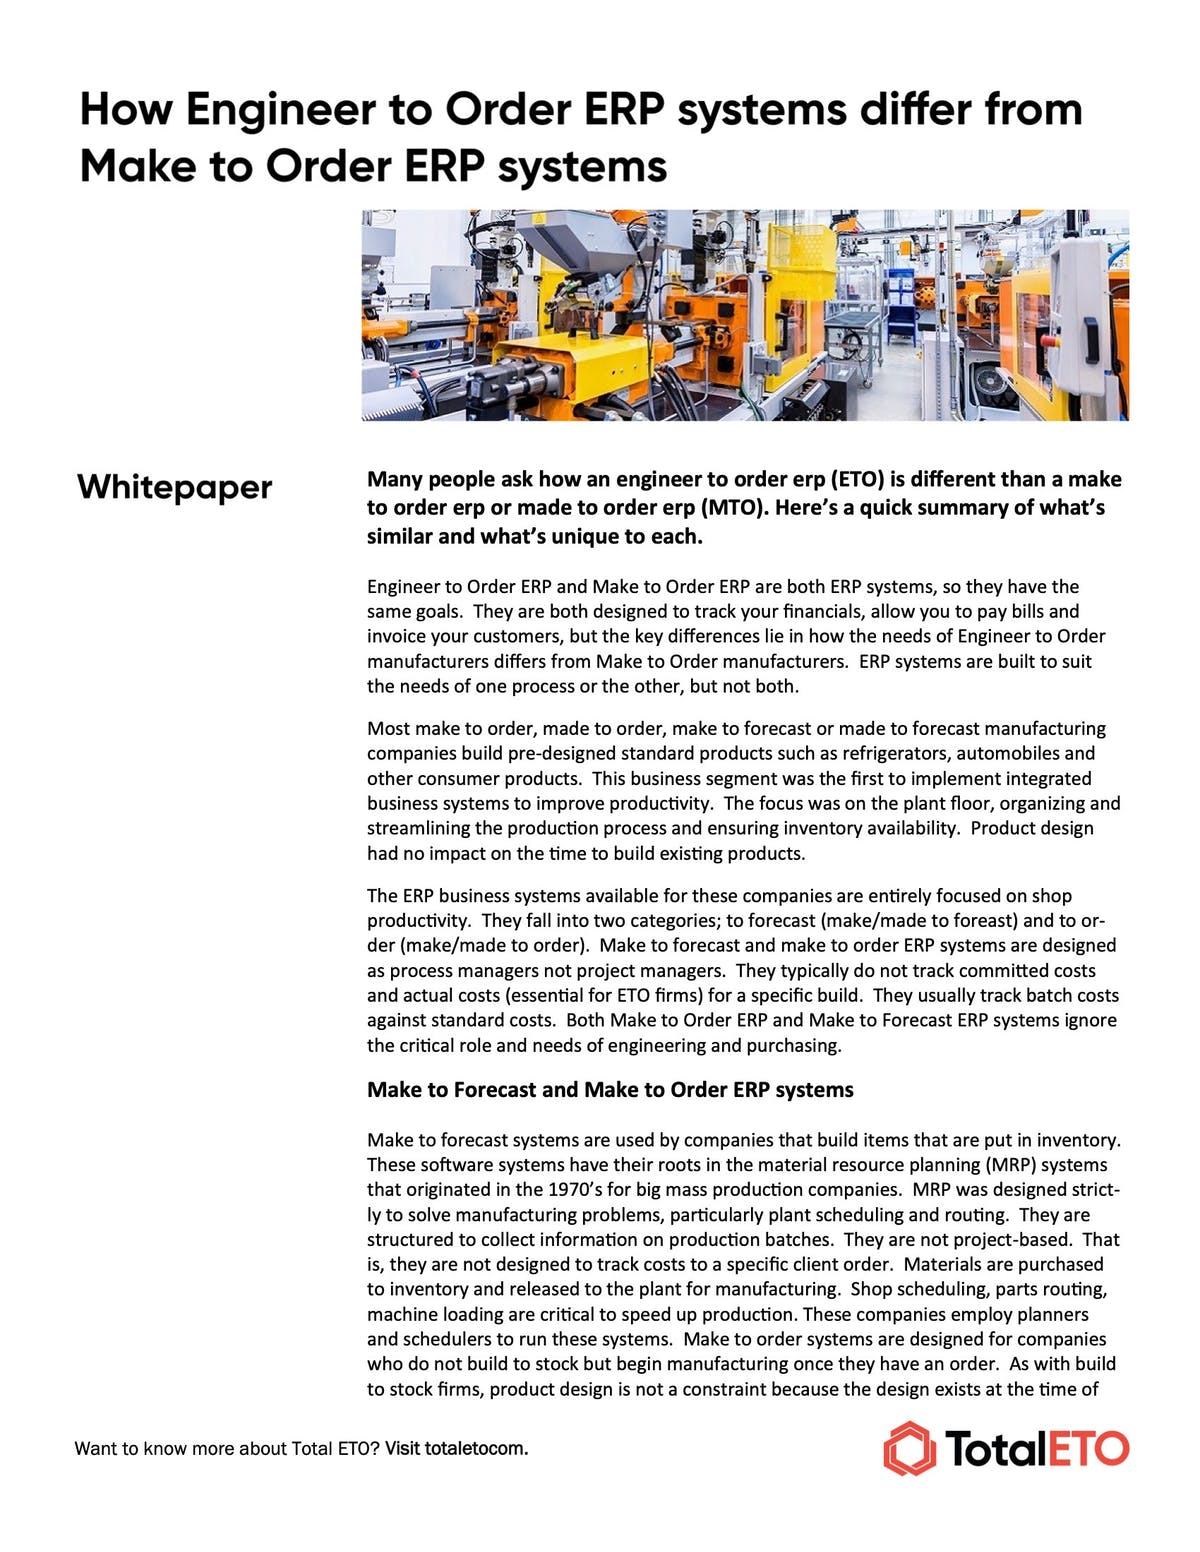 Total ETO White Paper - How Engineer to Order ERP Systems Differ From Make to Order ERP Systems